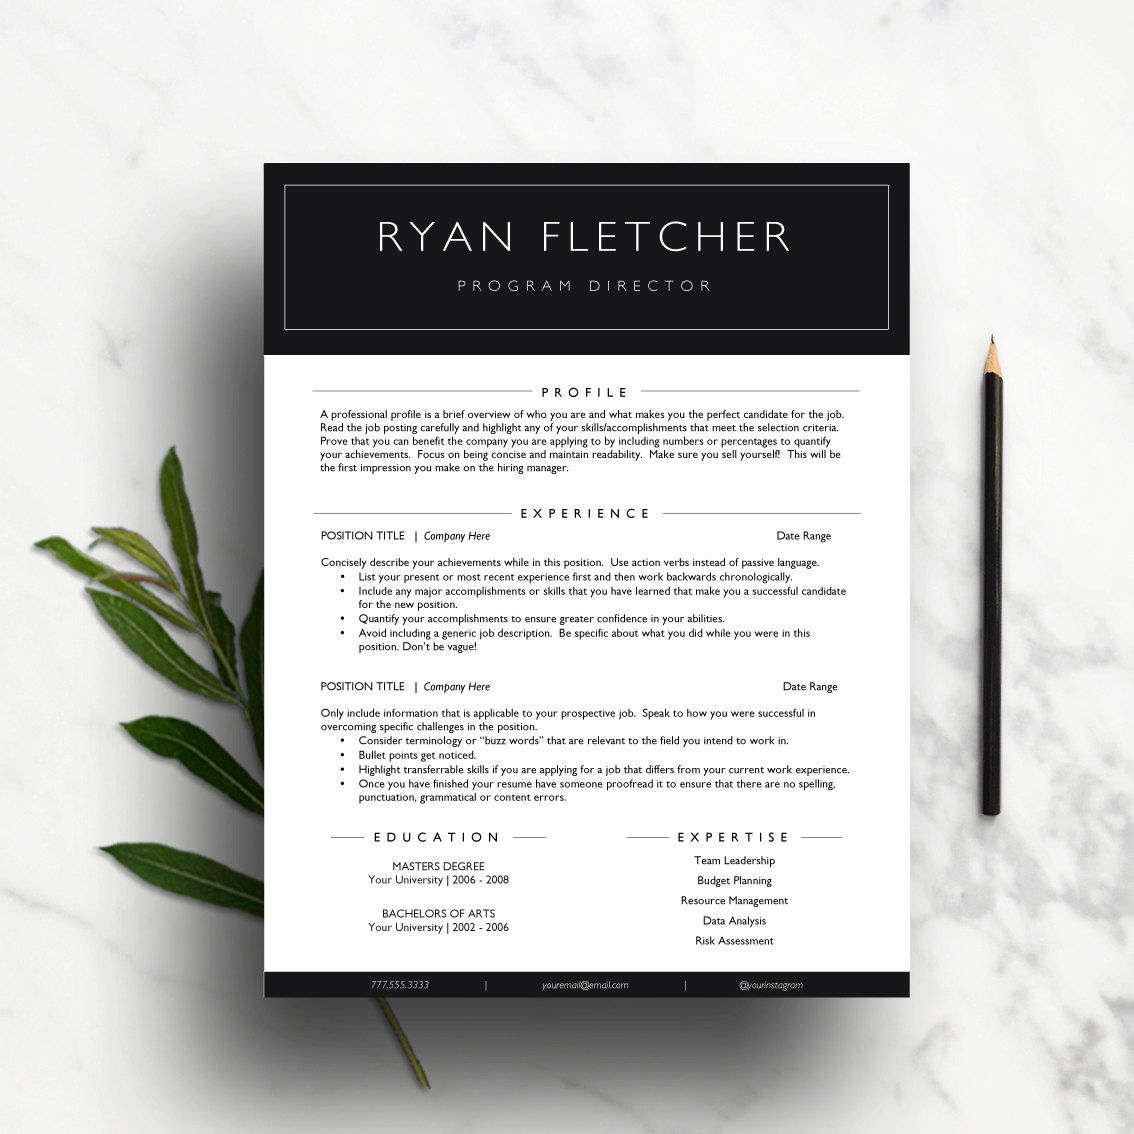 Awesome 1 Page Resume Format Free Download Thick 10 Envelope Template Square 15 Year Old Resume Sample 18th Invitation Templates Young 1and1 Templates Pink2 Binder Spine Template Résumé \u2014 Eliza Simpson